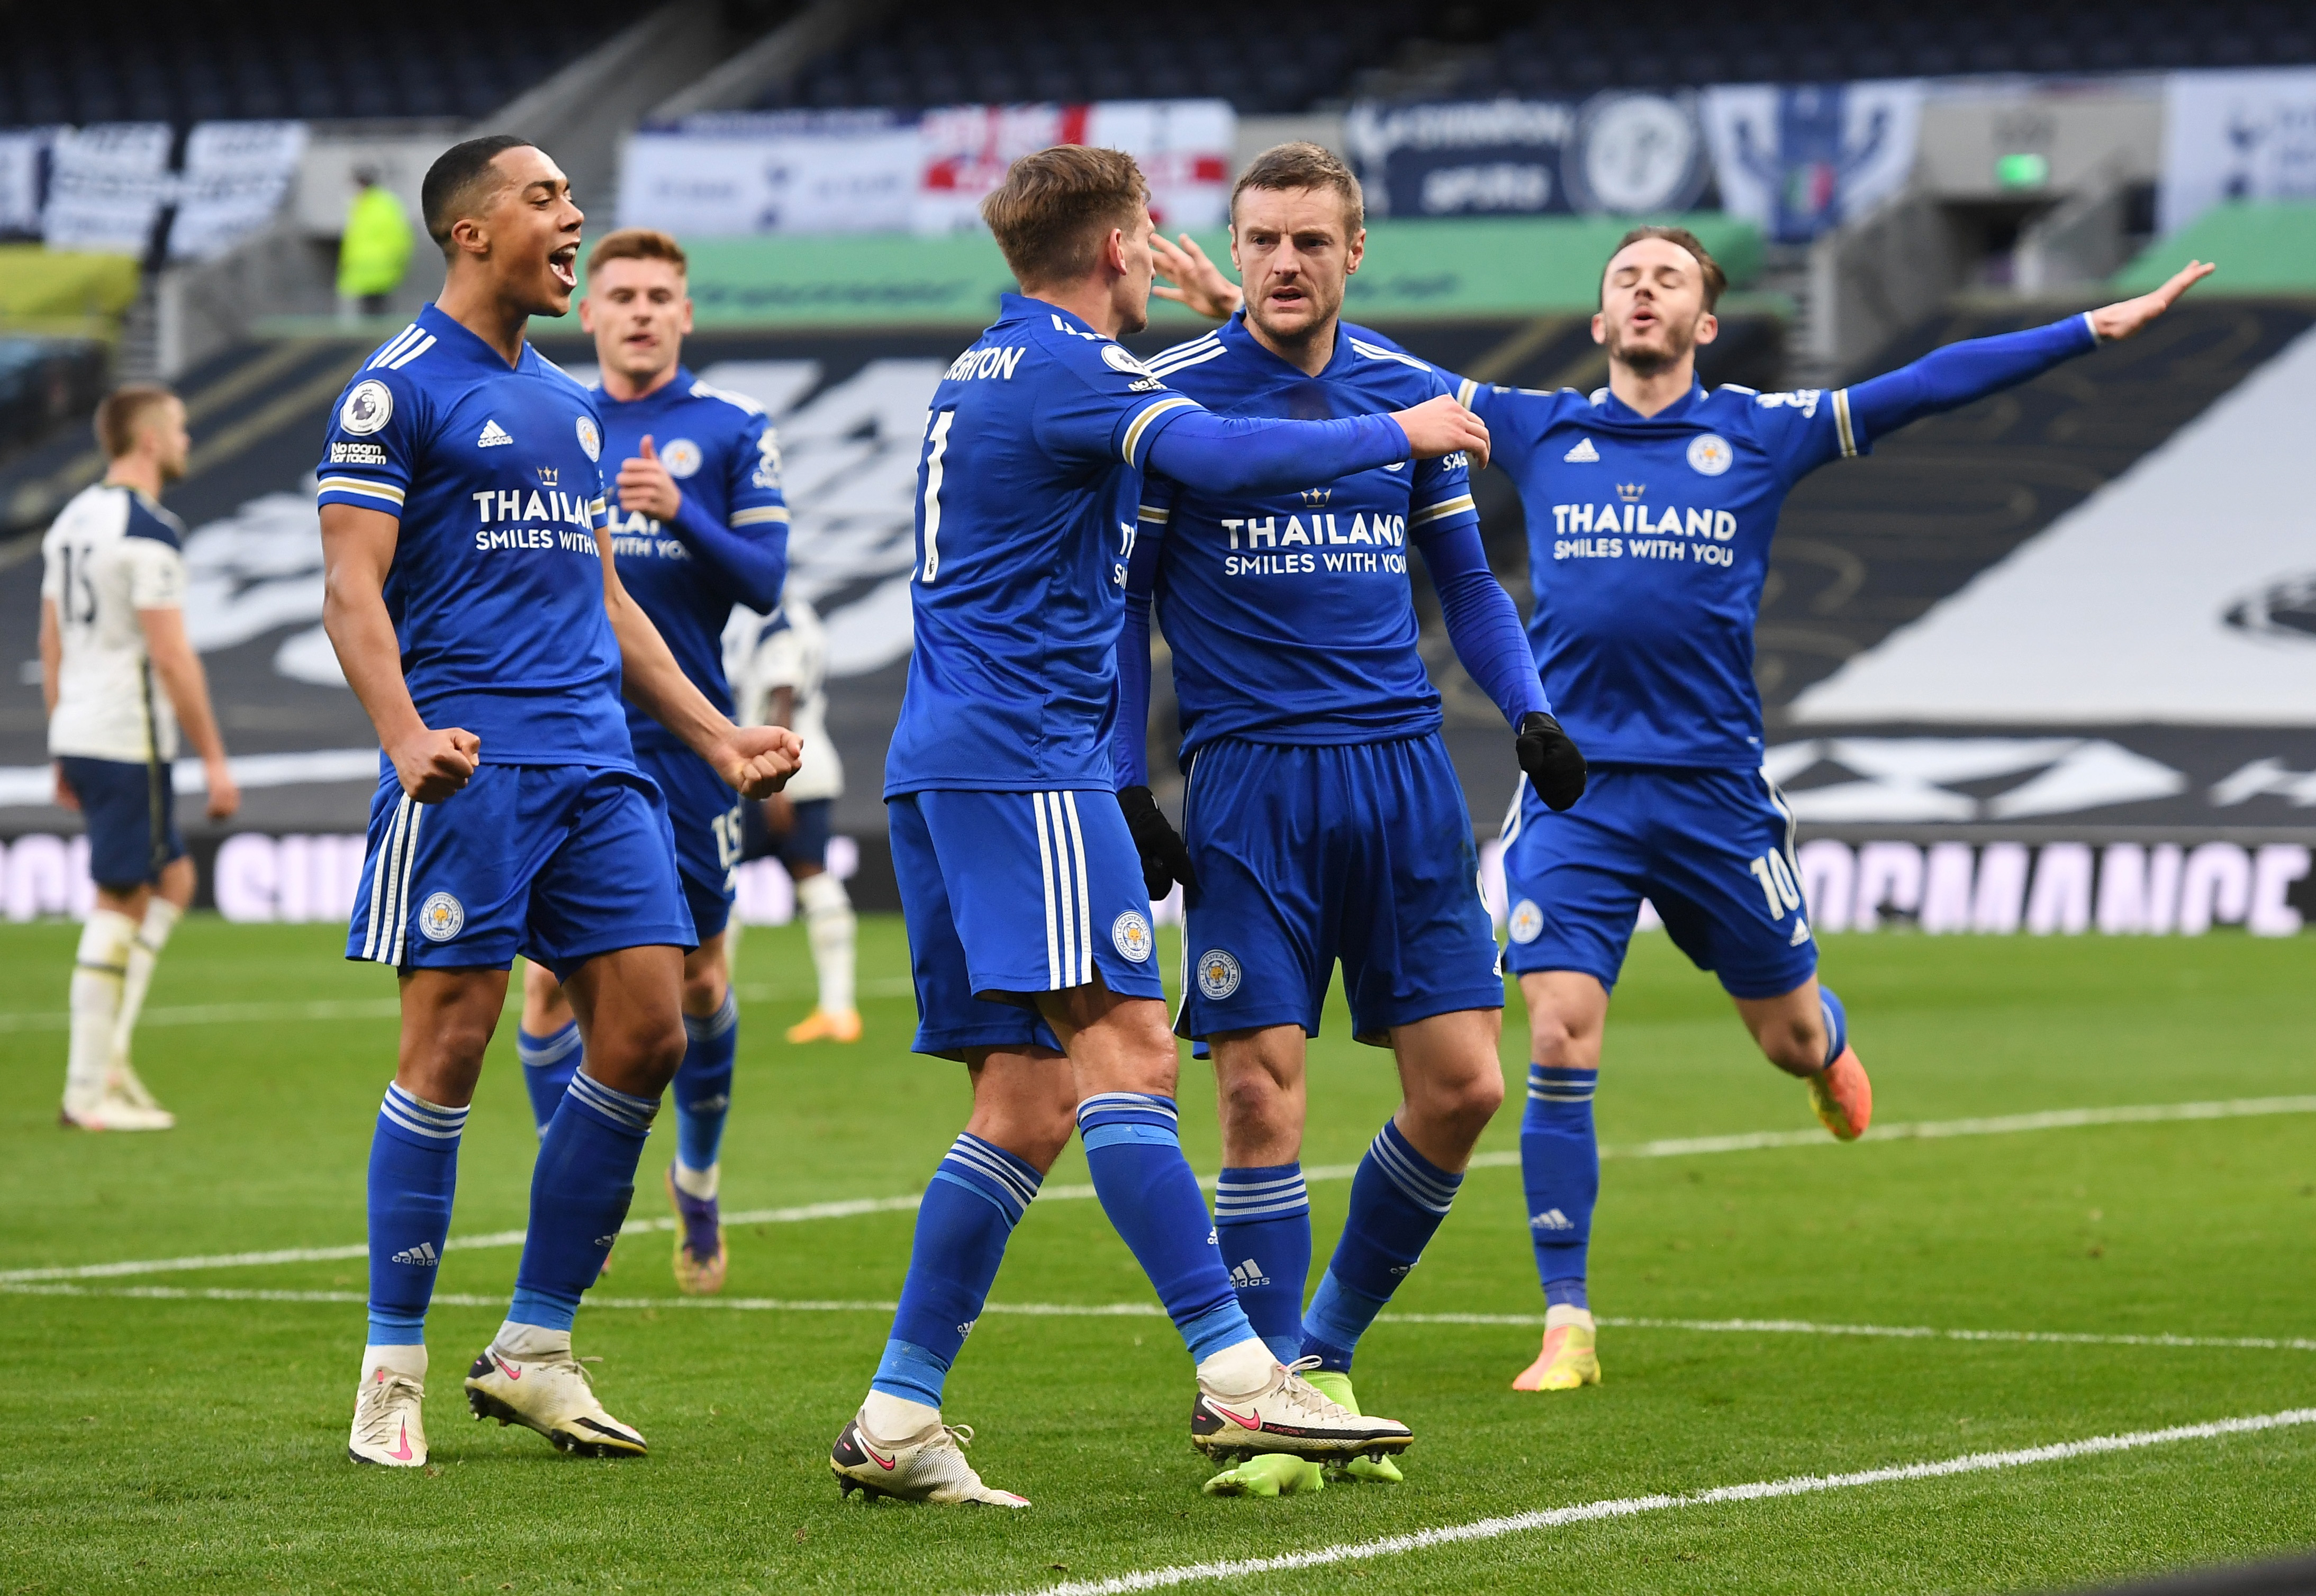 Leicester City's Jamie Vardy celebrates scoring their first goal with teammates. Photo: Reuters